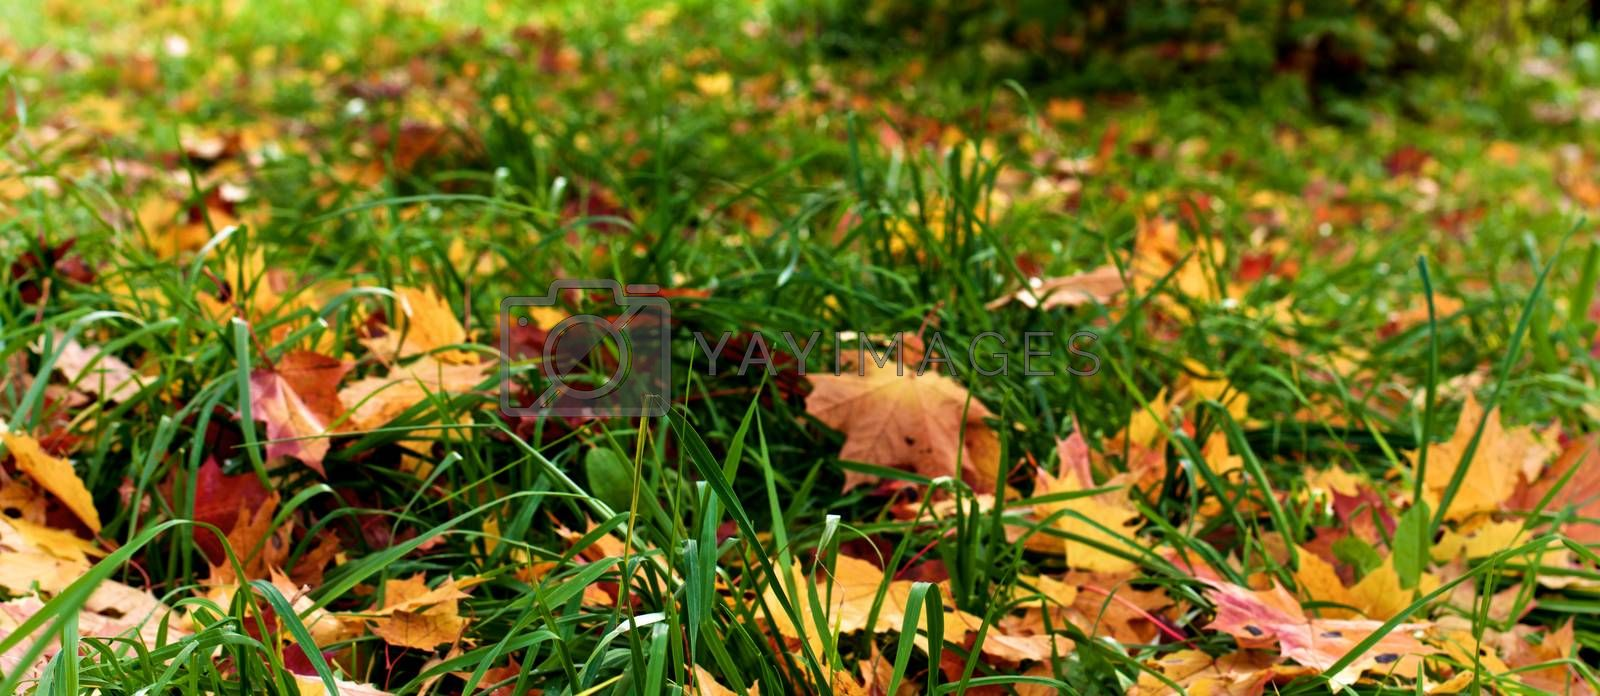 Royalty free image of Maple Leafs in Grass by zhekos